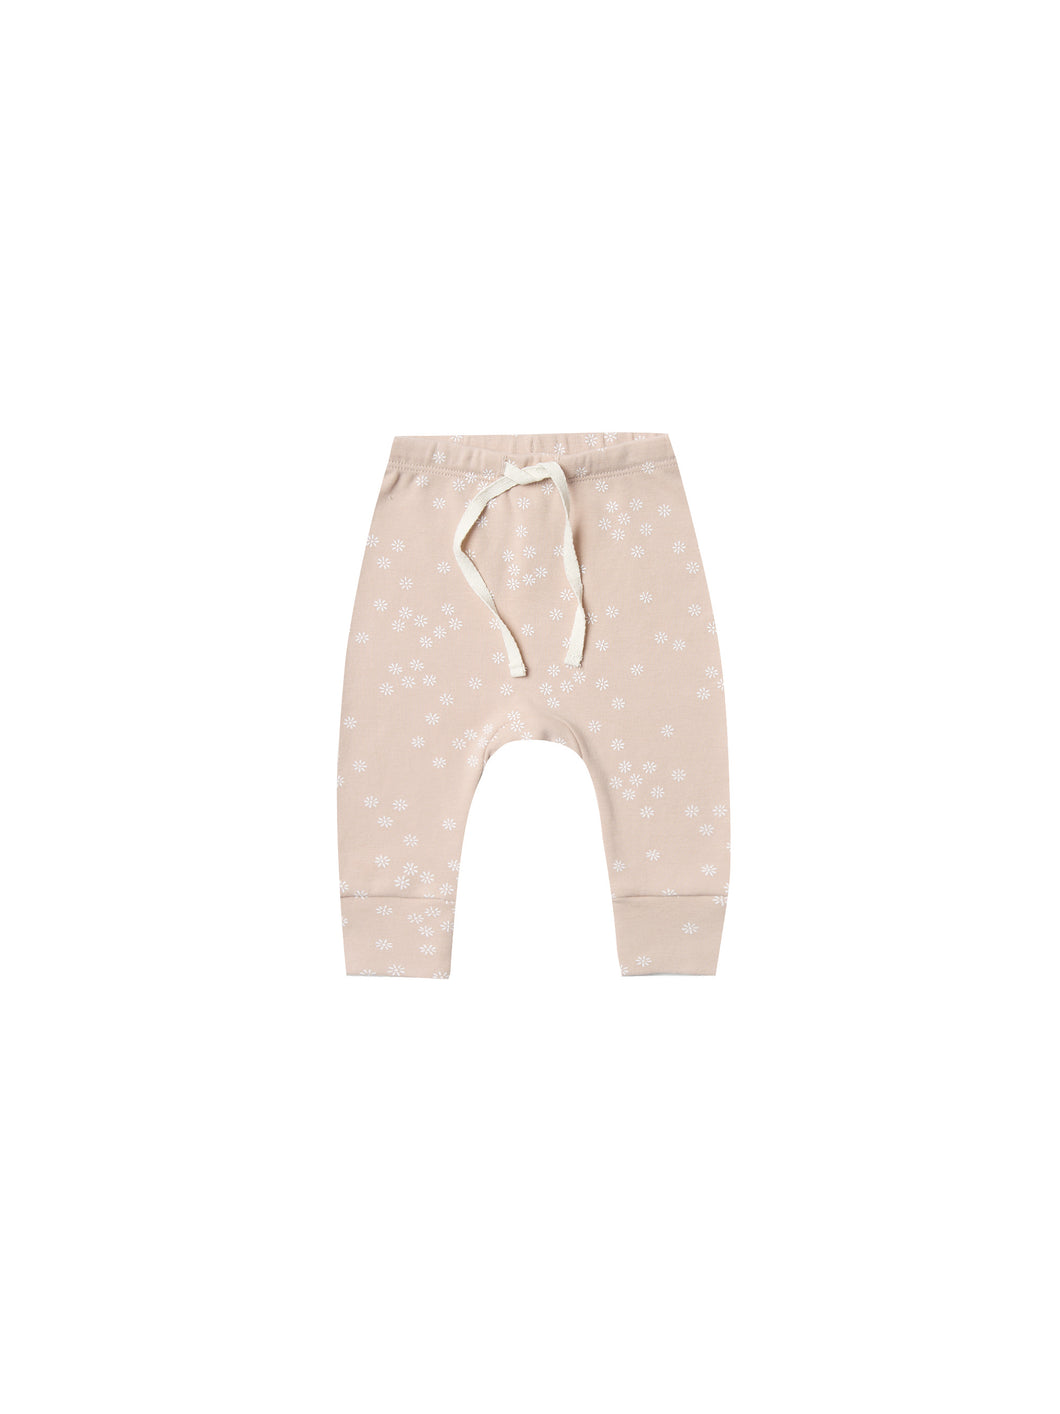 Quincy Mae drawstring pant - rose